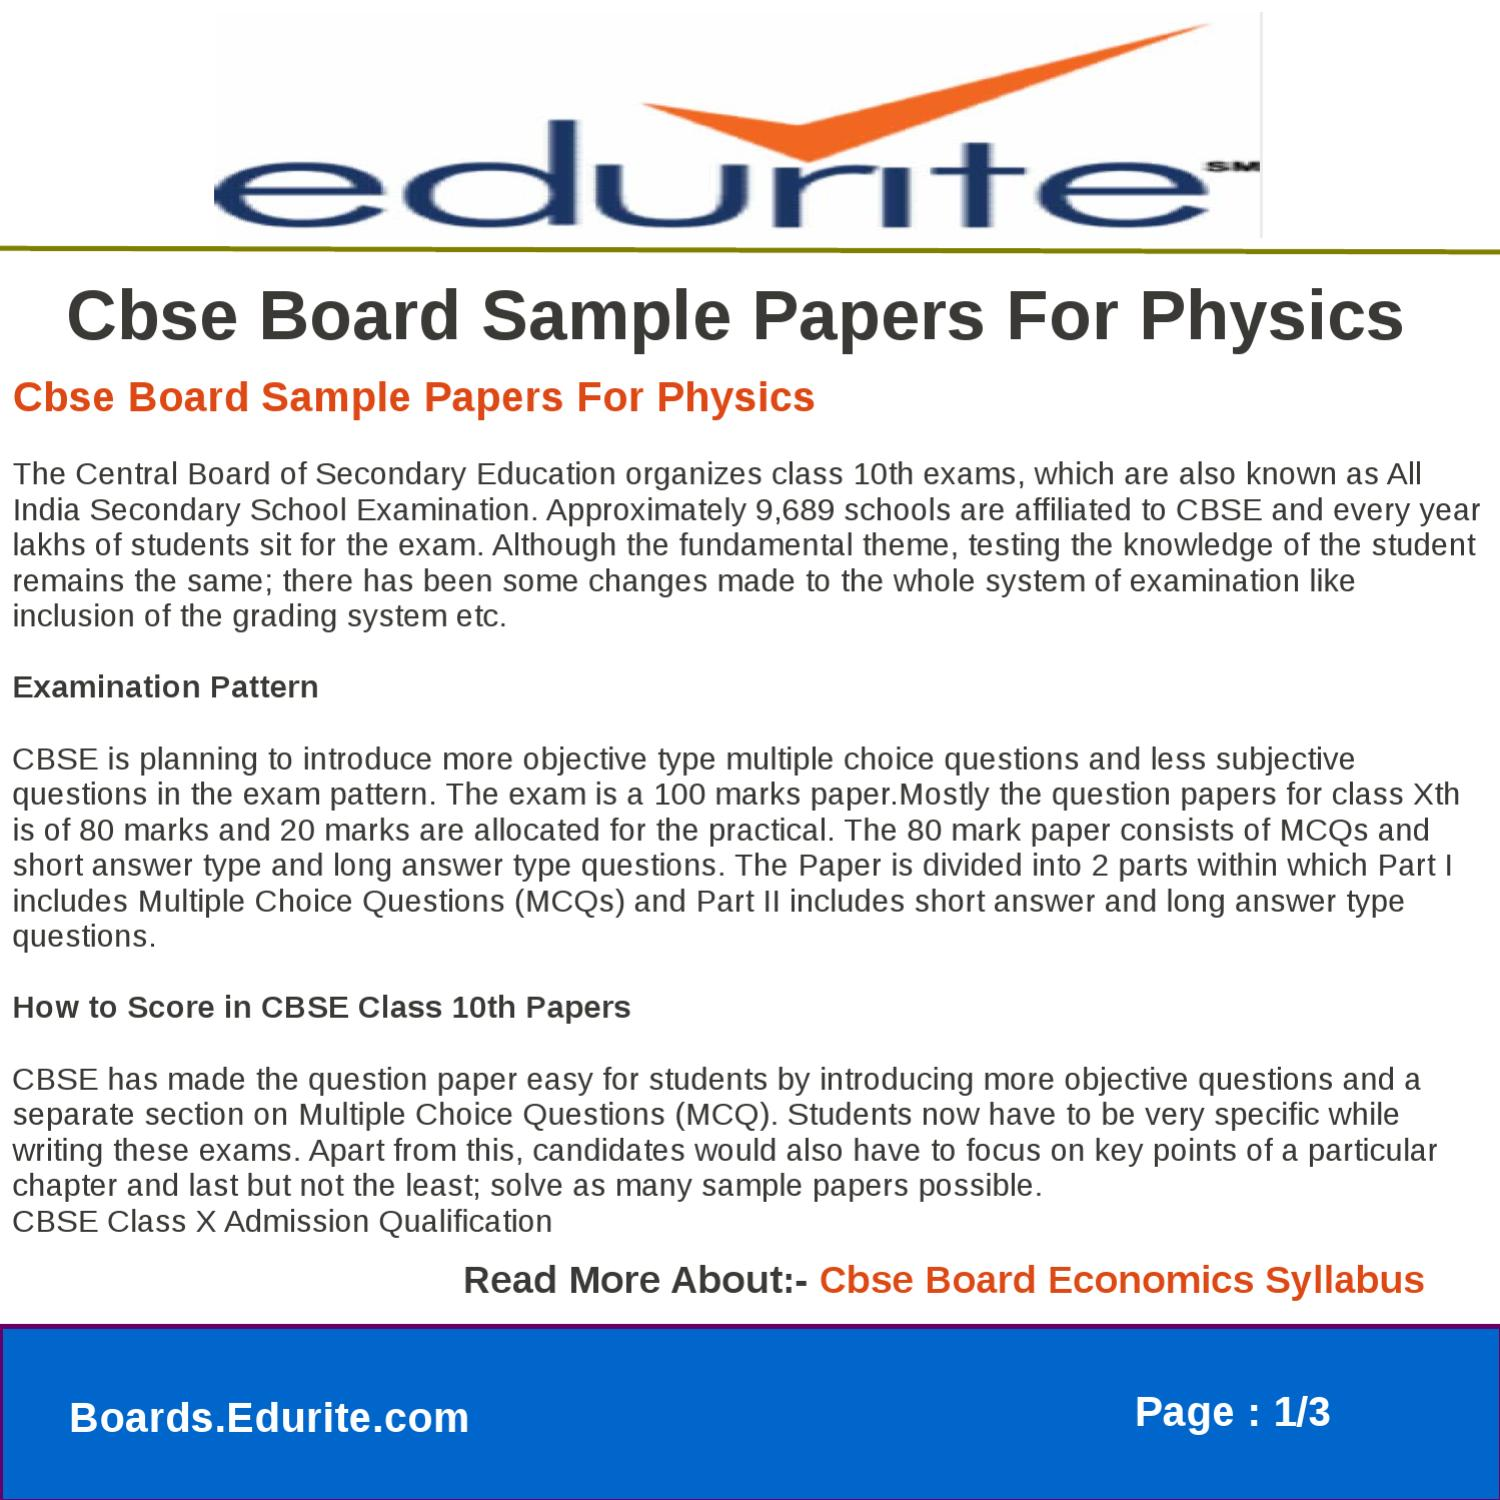 Cbse Board Sample Papers For Physics by gaurav saini - issuu